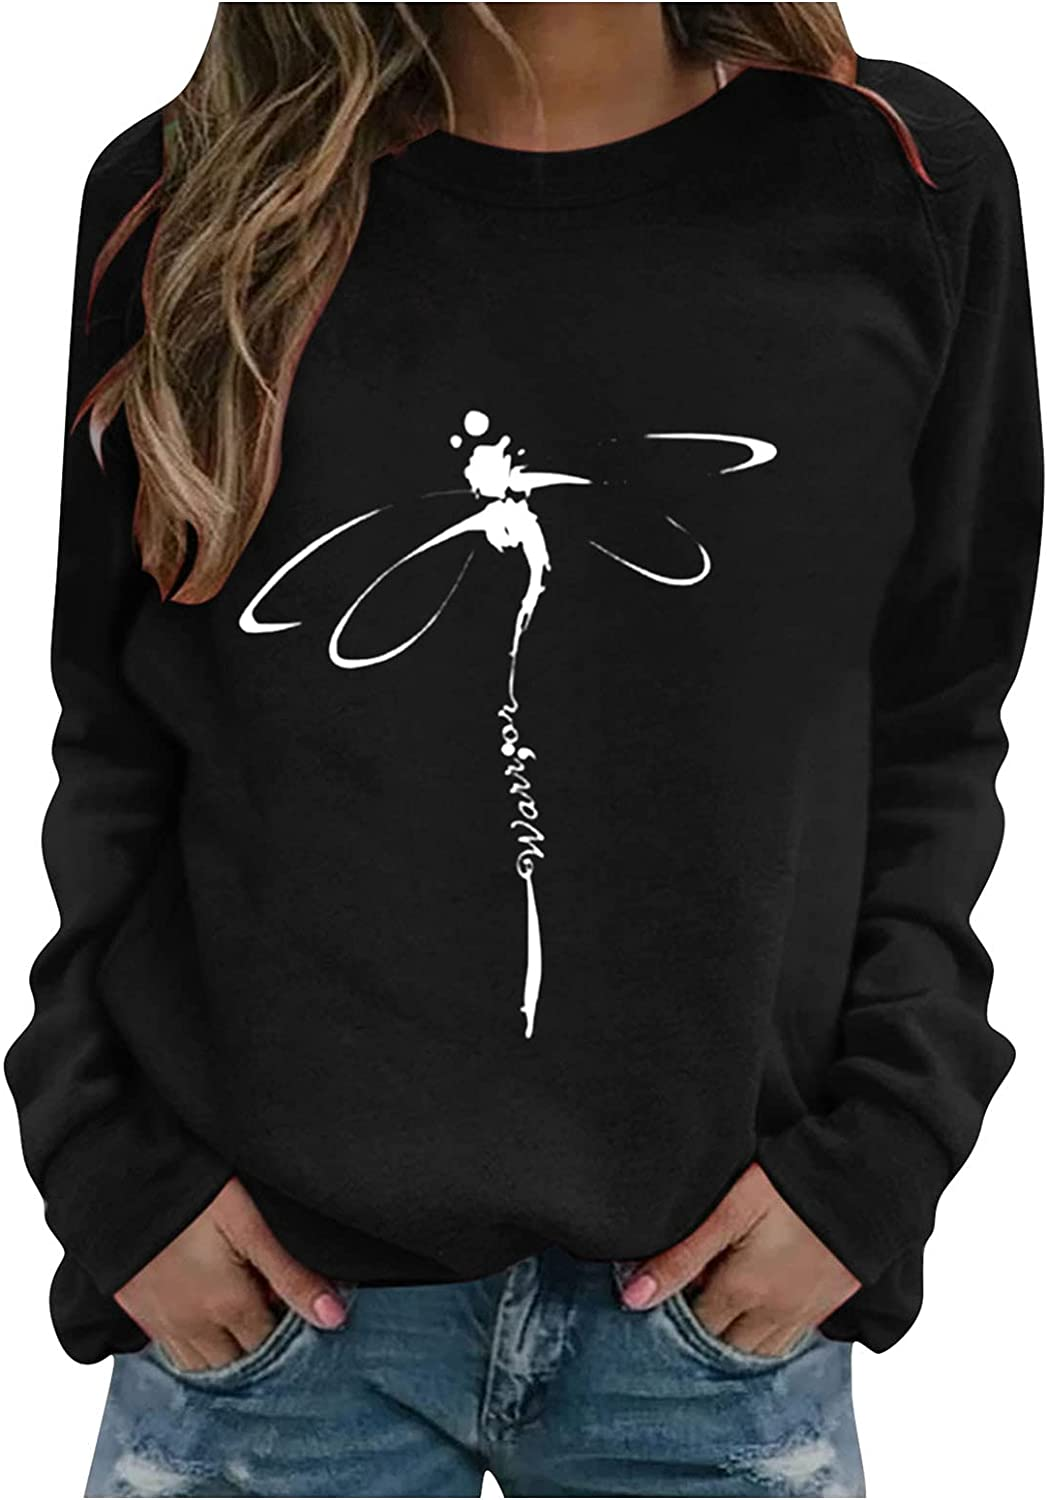 MASZONE Pullover Sweaters for Women Graphic Dragonfly Print O-Neck Long Sleeve Pullover Hoodies Casual Solid Color Top